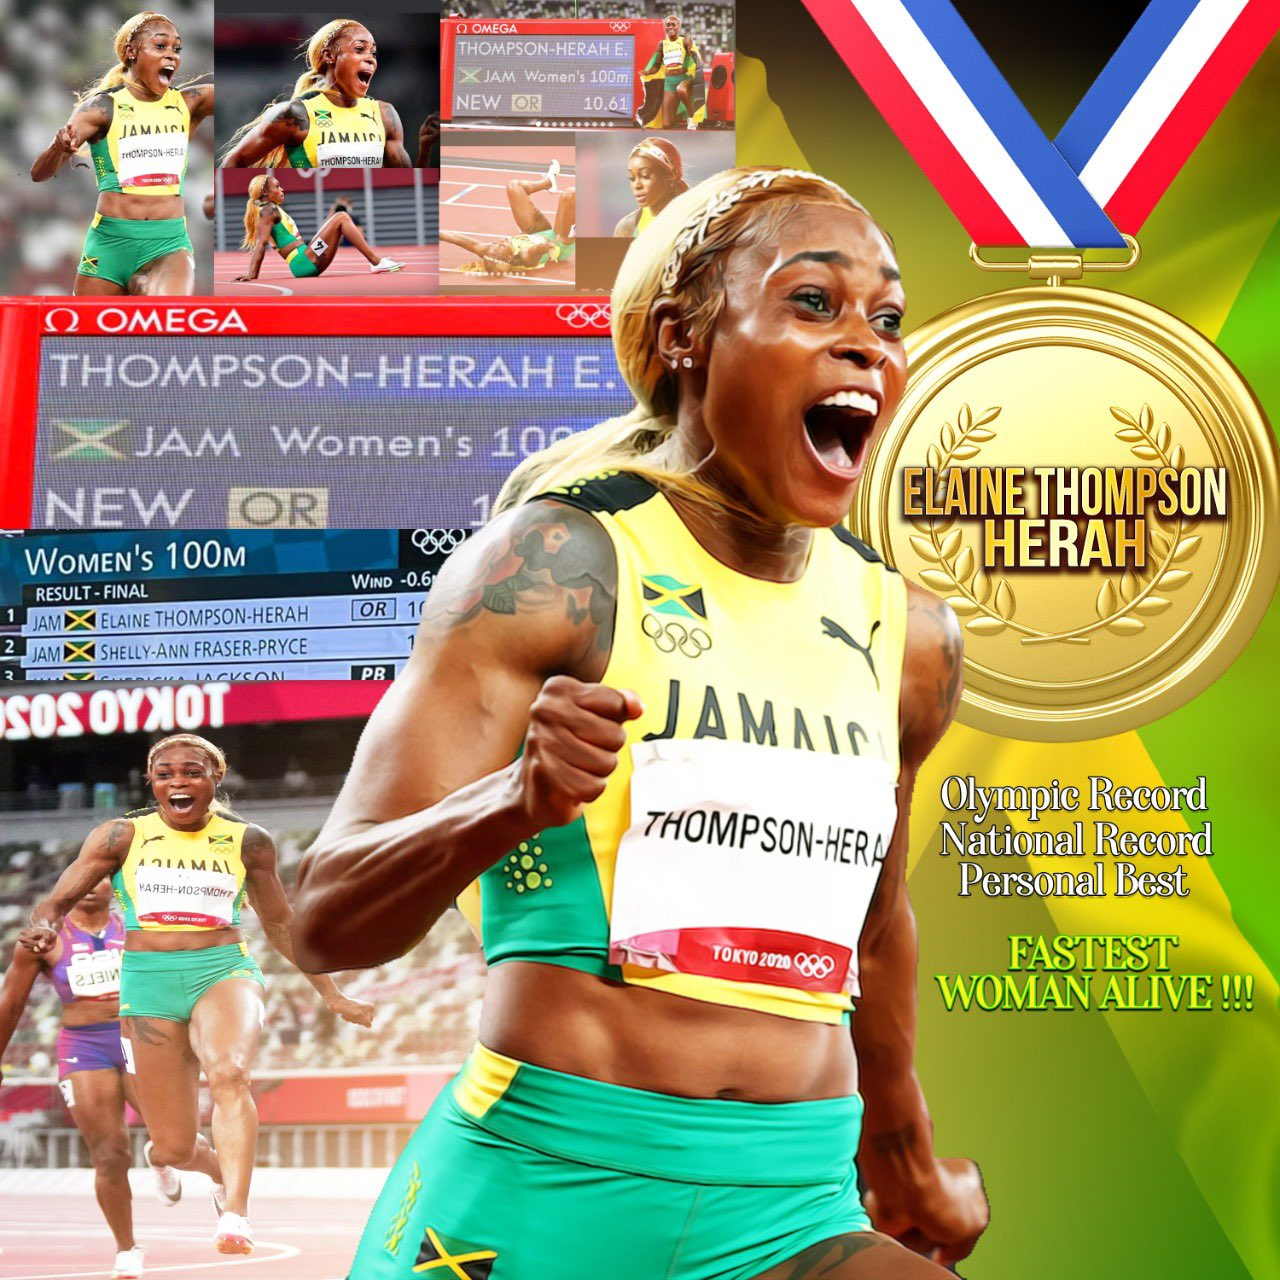 Just a lil girl from BANANA GROUND who liked to run. Believe In your dreams work hard and have faith in God…ETH